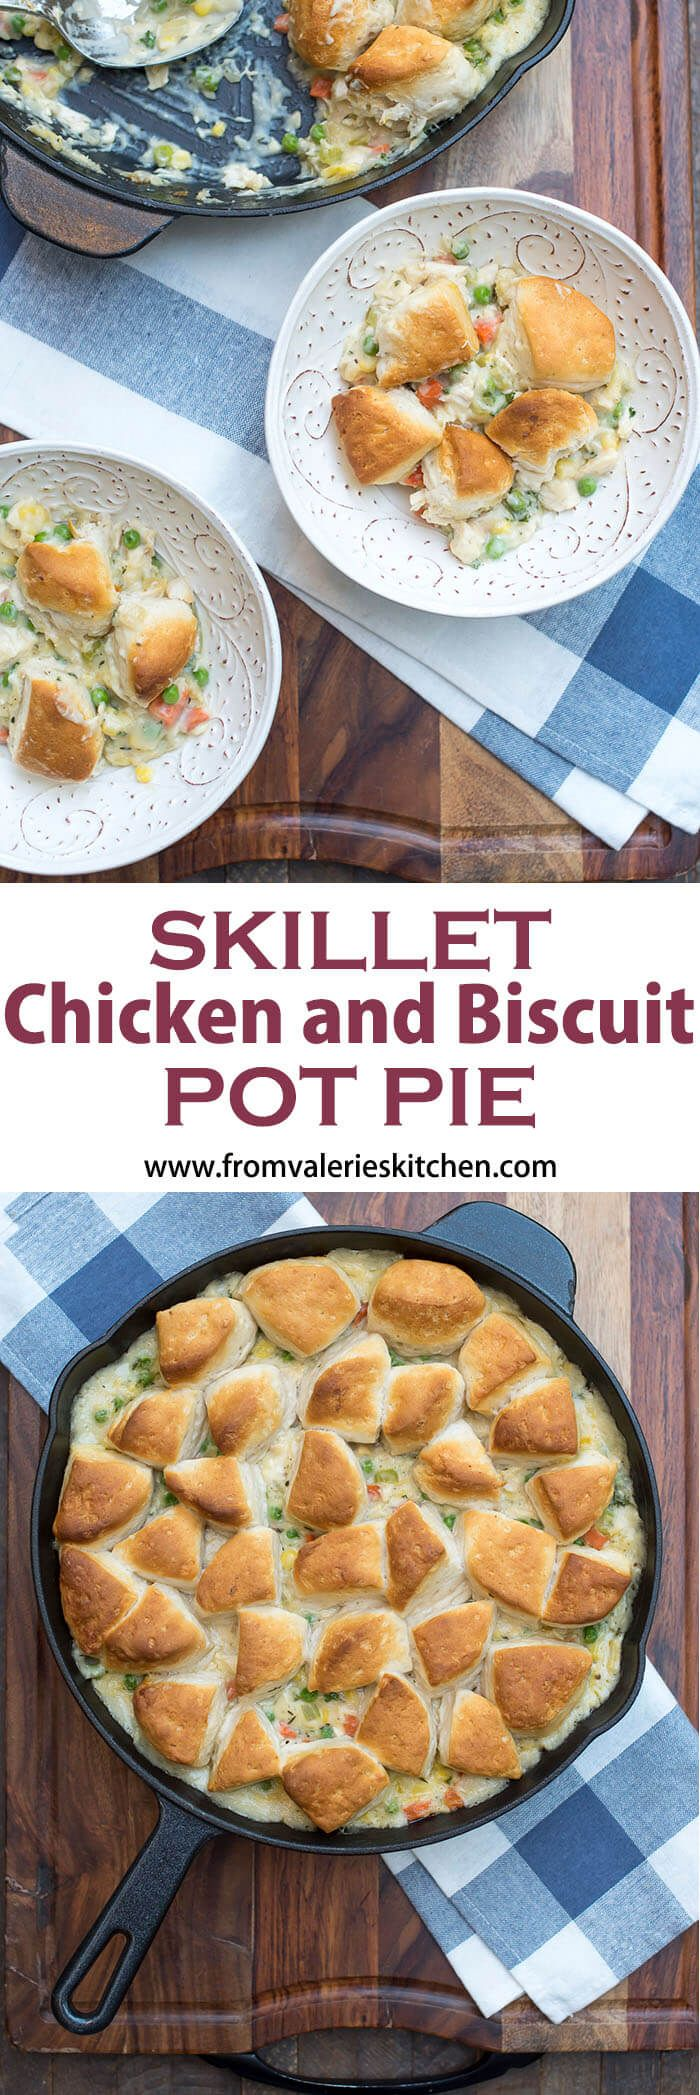 A creamy, chicken and vegetable studded filling is topped with biscuit pieces and baked until bubbly and golden brown This family-friendly Skillet Chicken and Biscuit Pot Pie is an easy, comforting weeknight dinner choice.